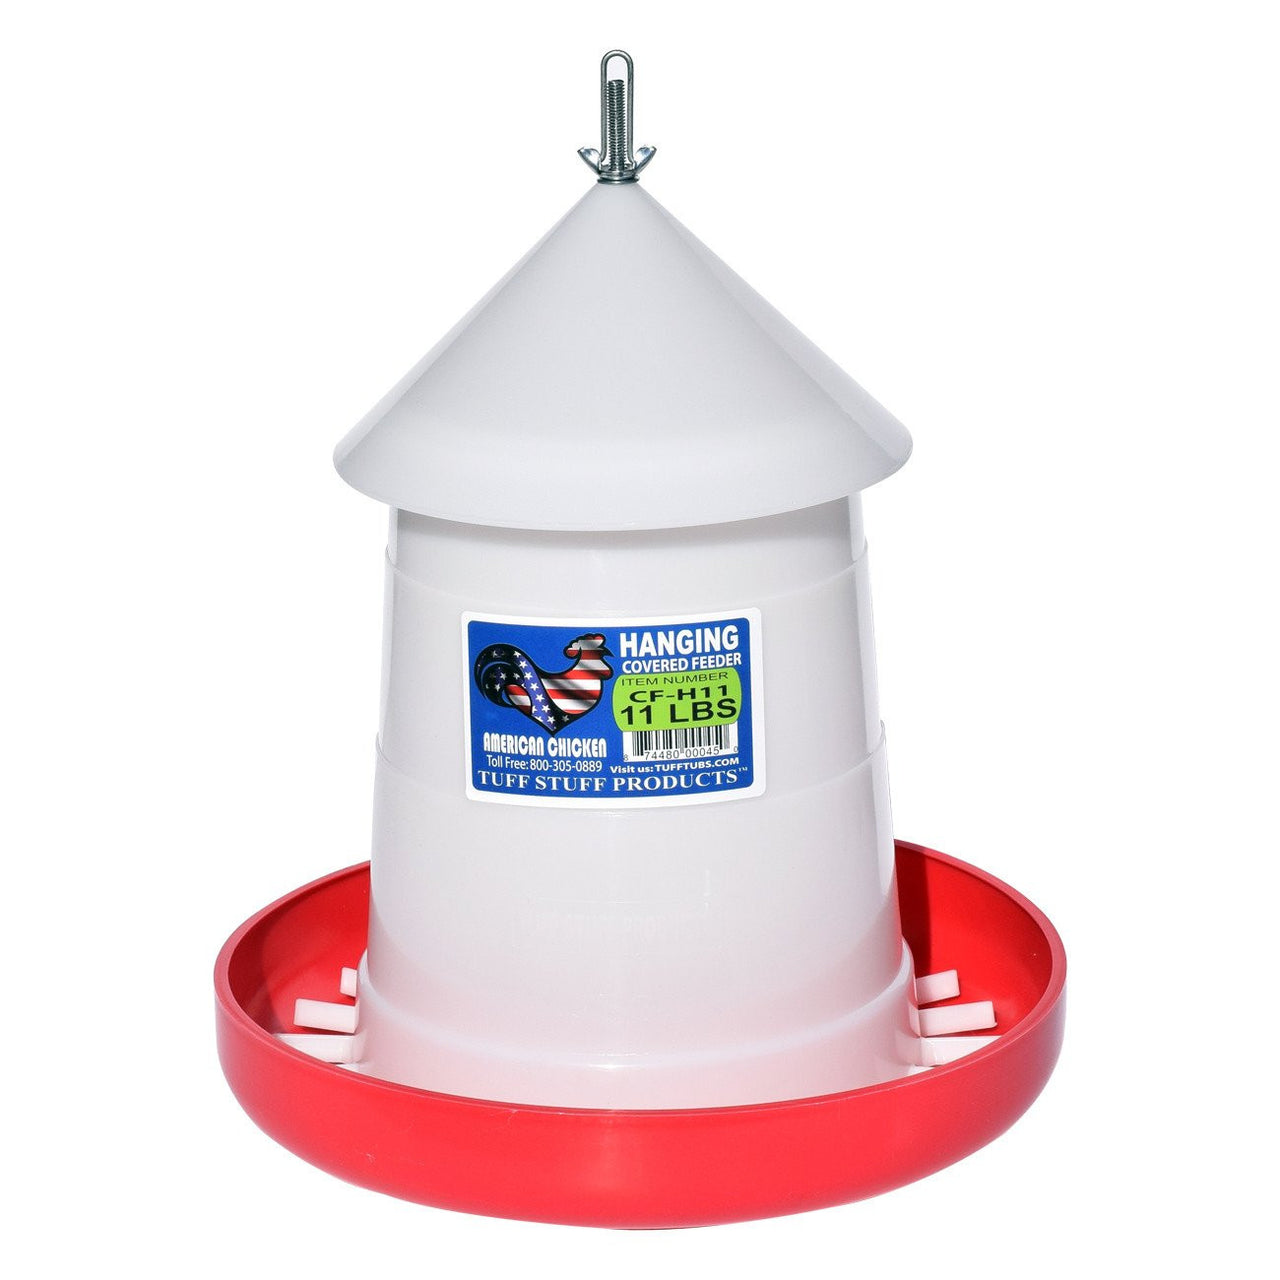 Tuff Stuff Poultry Hd Cover Feeder / Hanger - 11Lbs - Poultry Feeders Drinkers Tuff Stuff - Canada